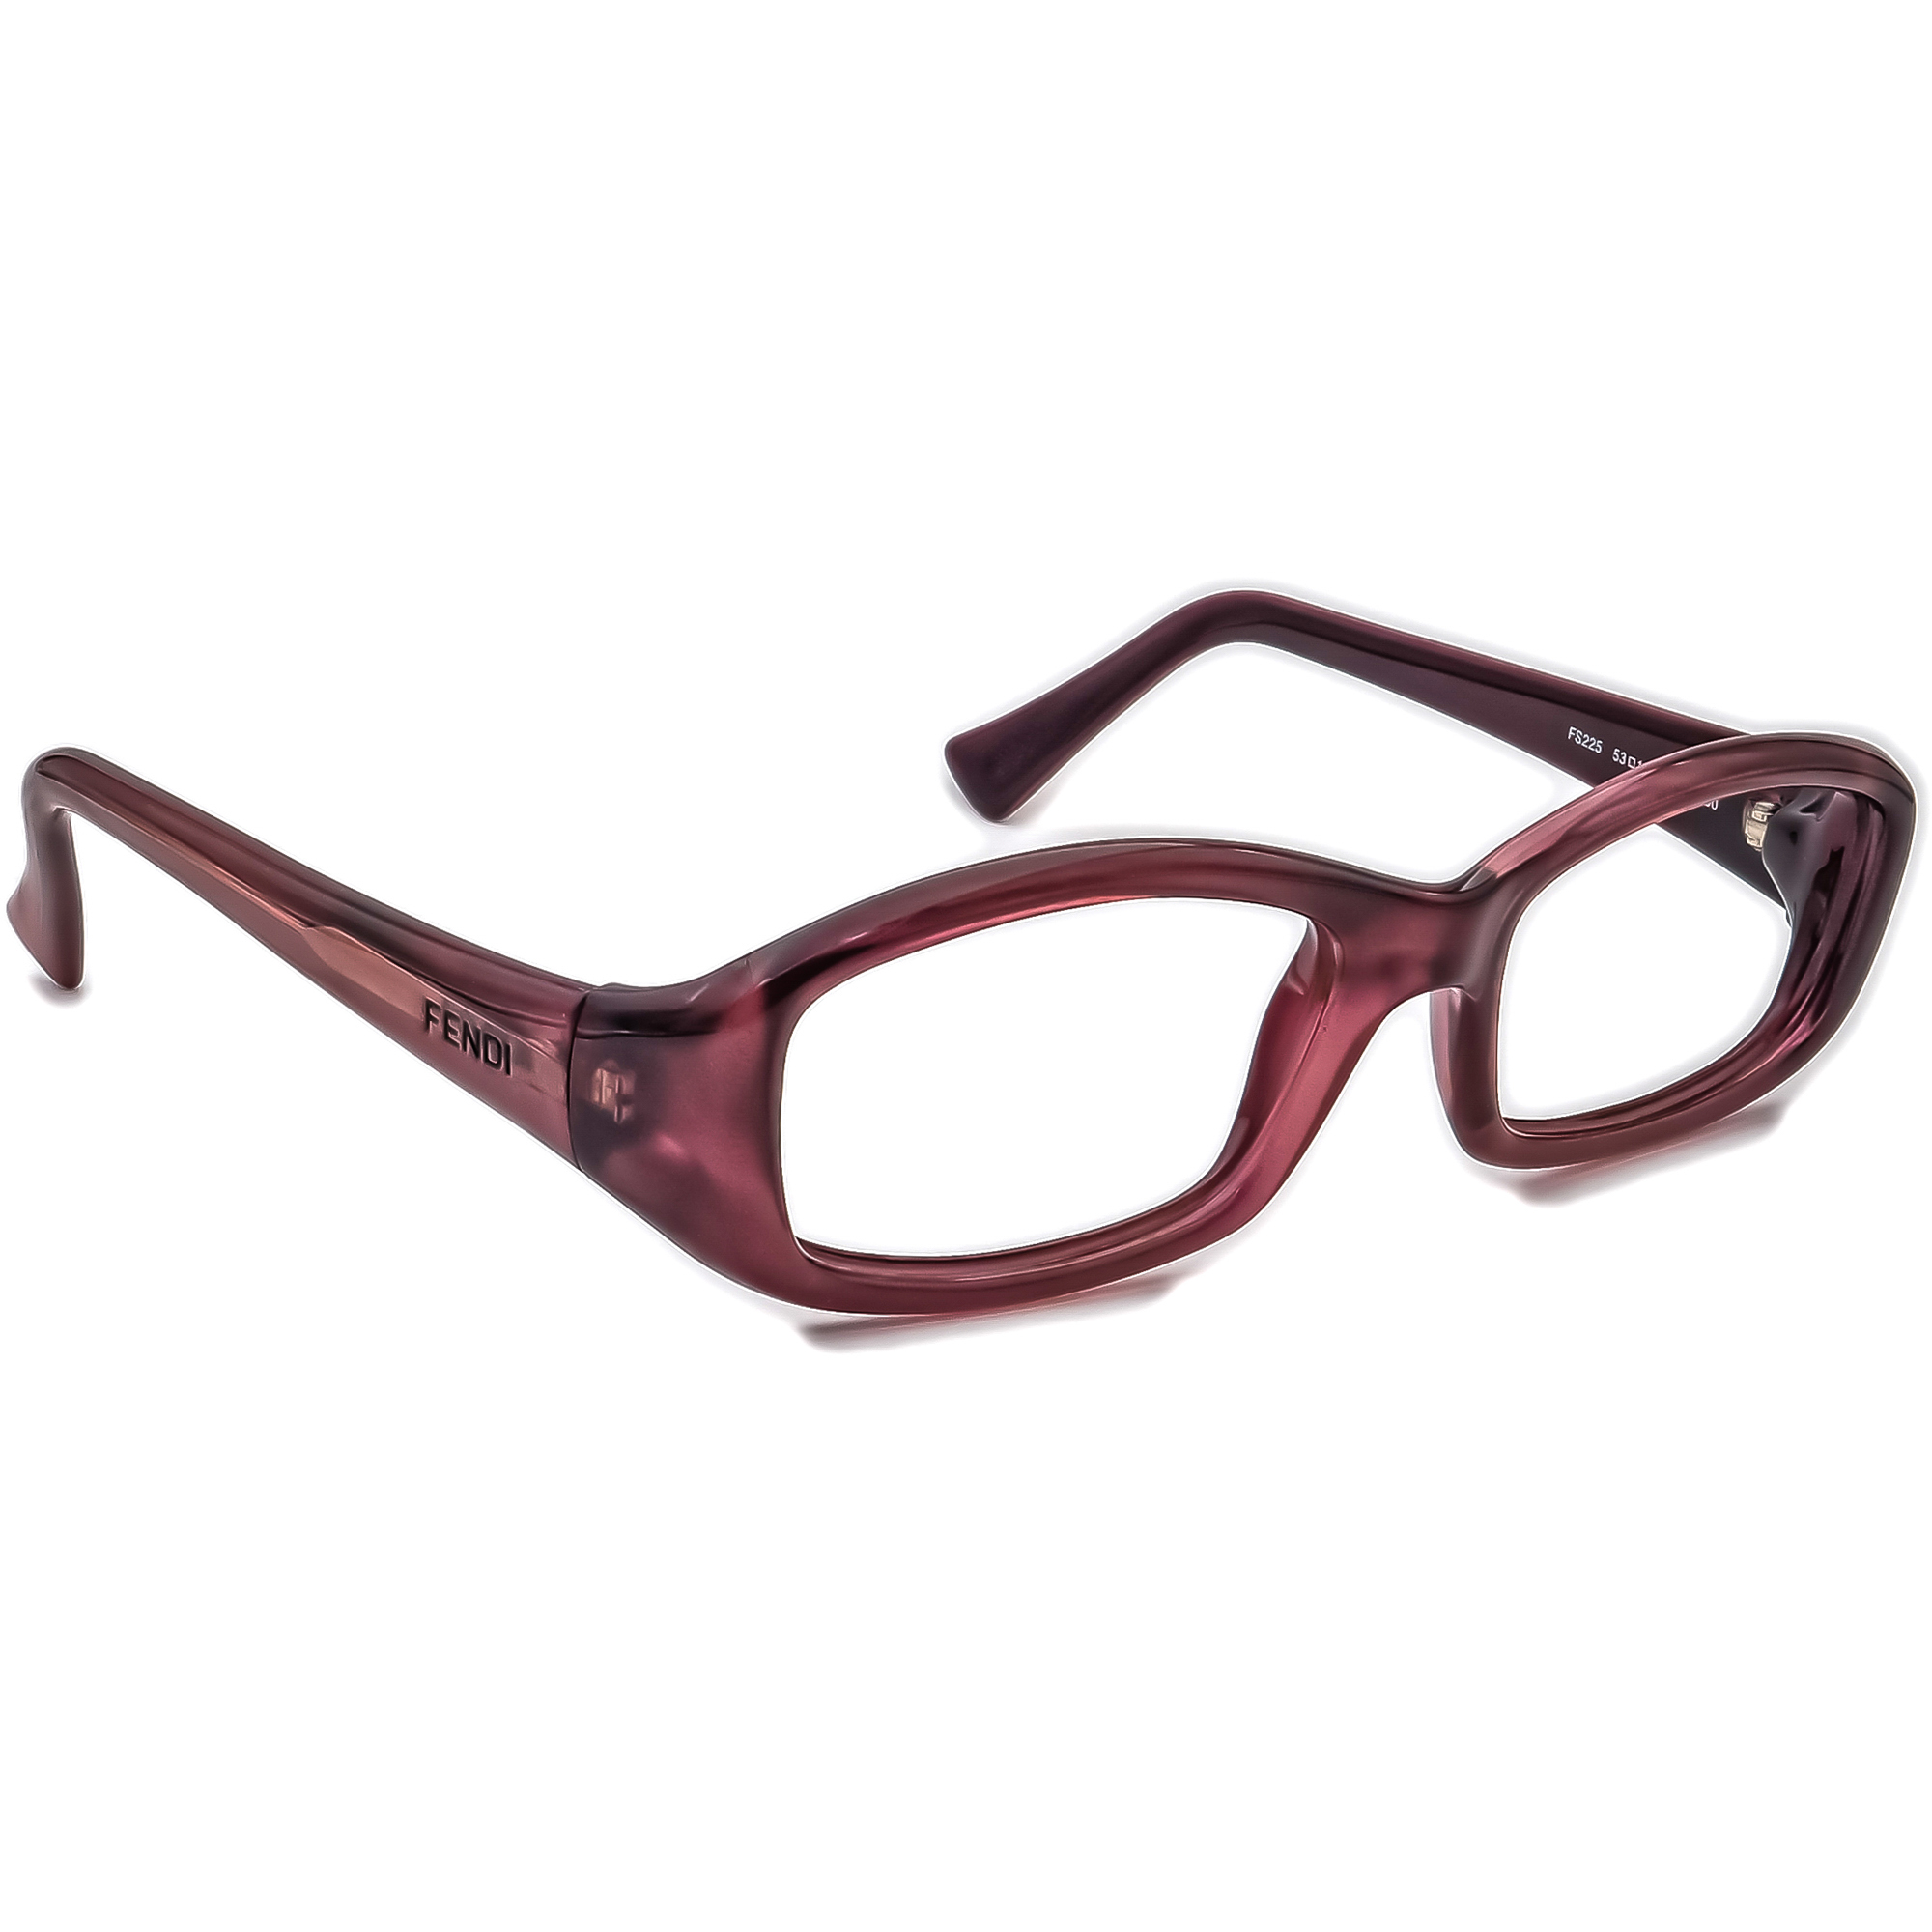 Fendi FS225 Plum Sunglasses Frame Only